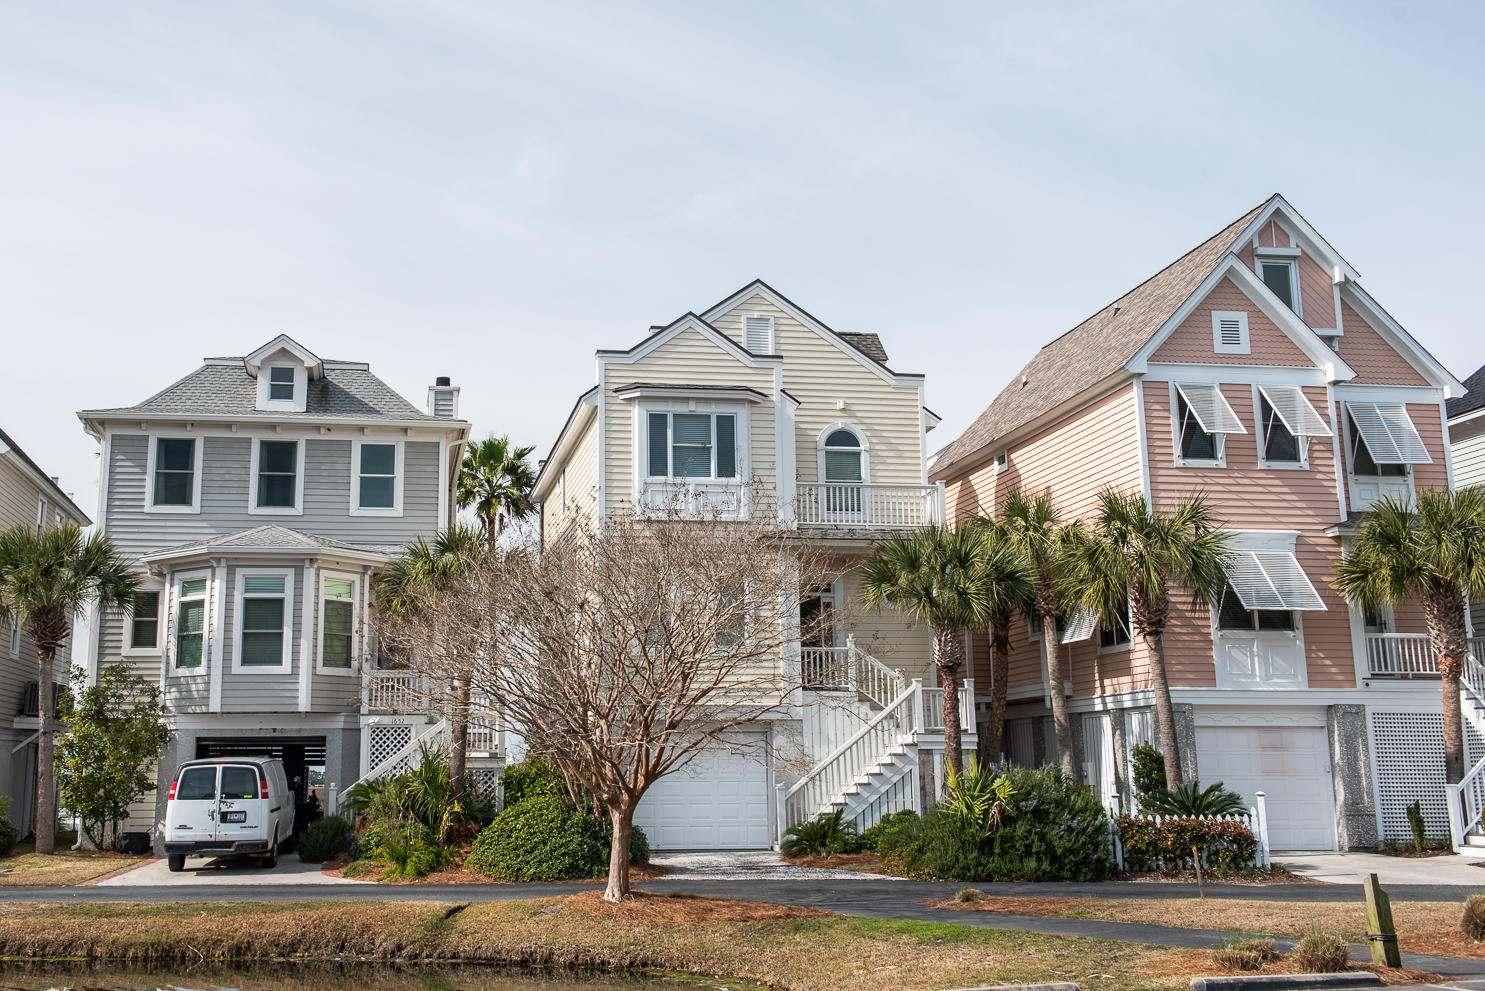 Tolers Cove Homes For Sale - B-4 & B-5 Tolers Cove Marina 70ft + Home, Mount Pleasant, SC - 47